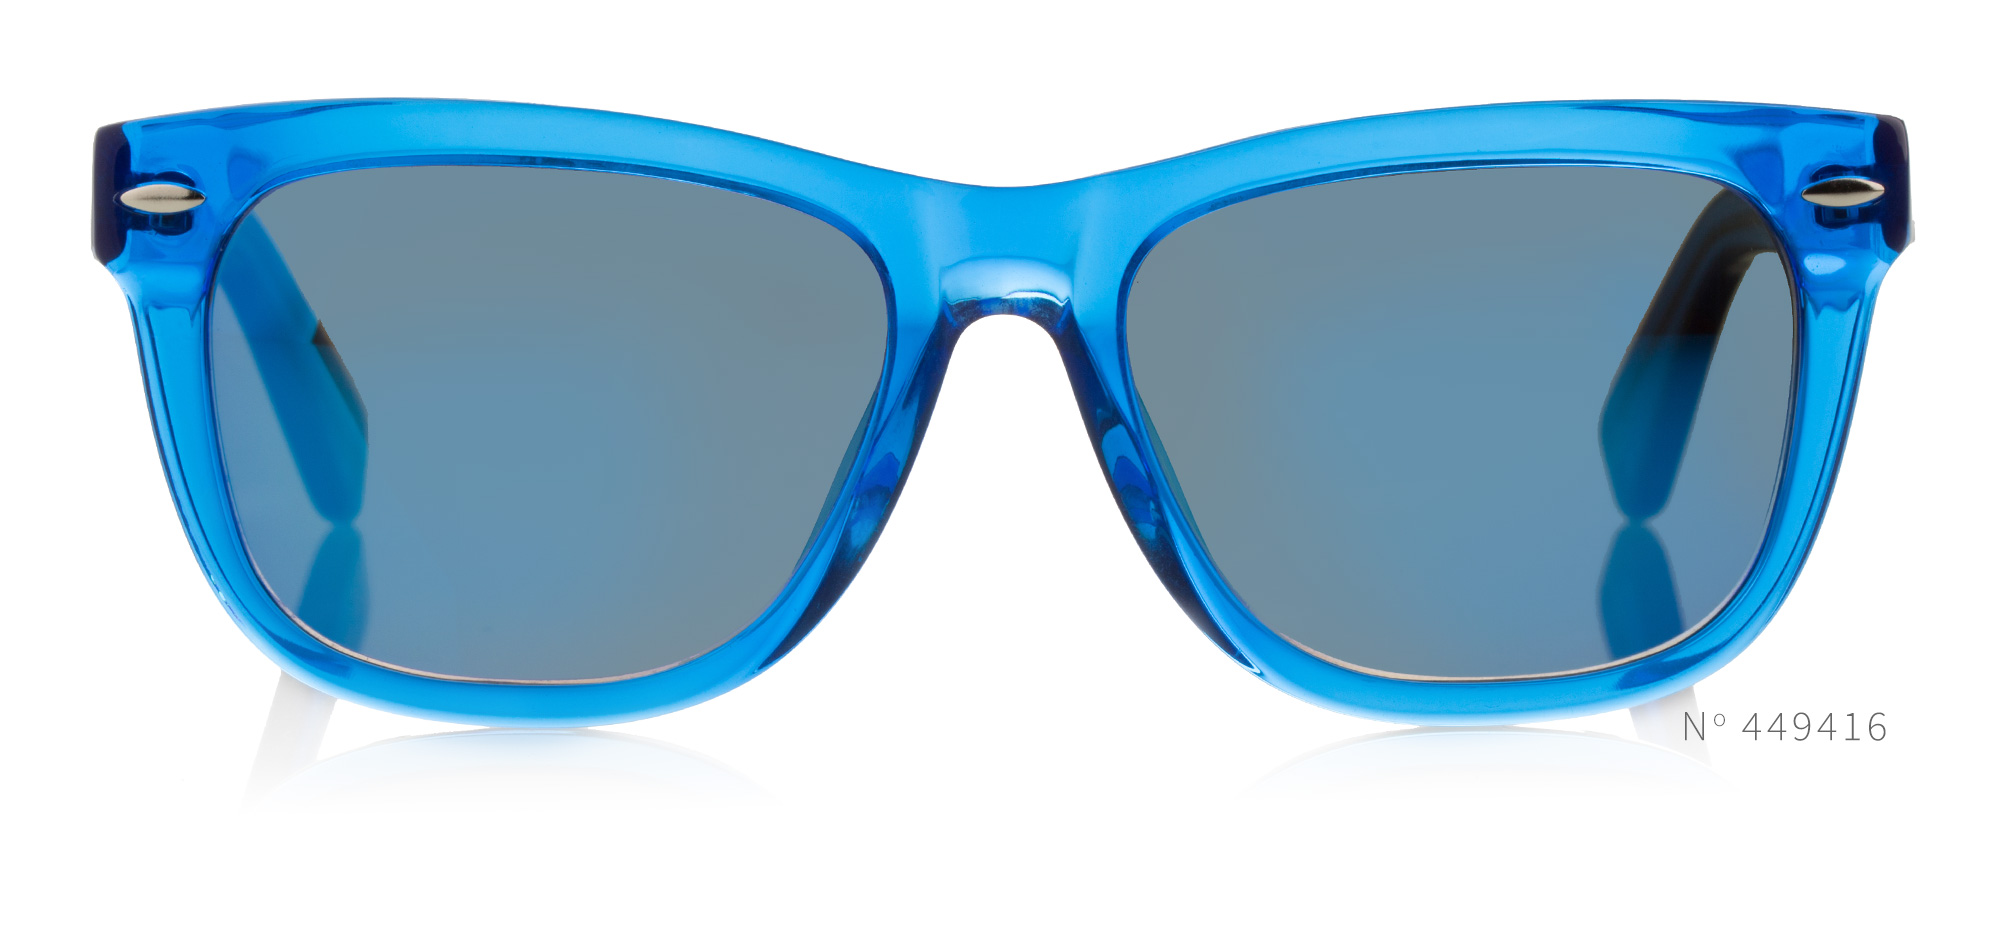 Blue Acetate Wayfarers